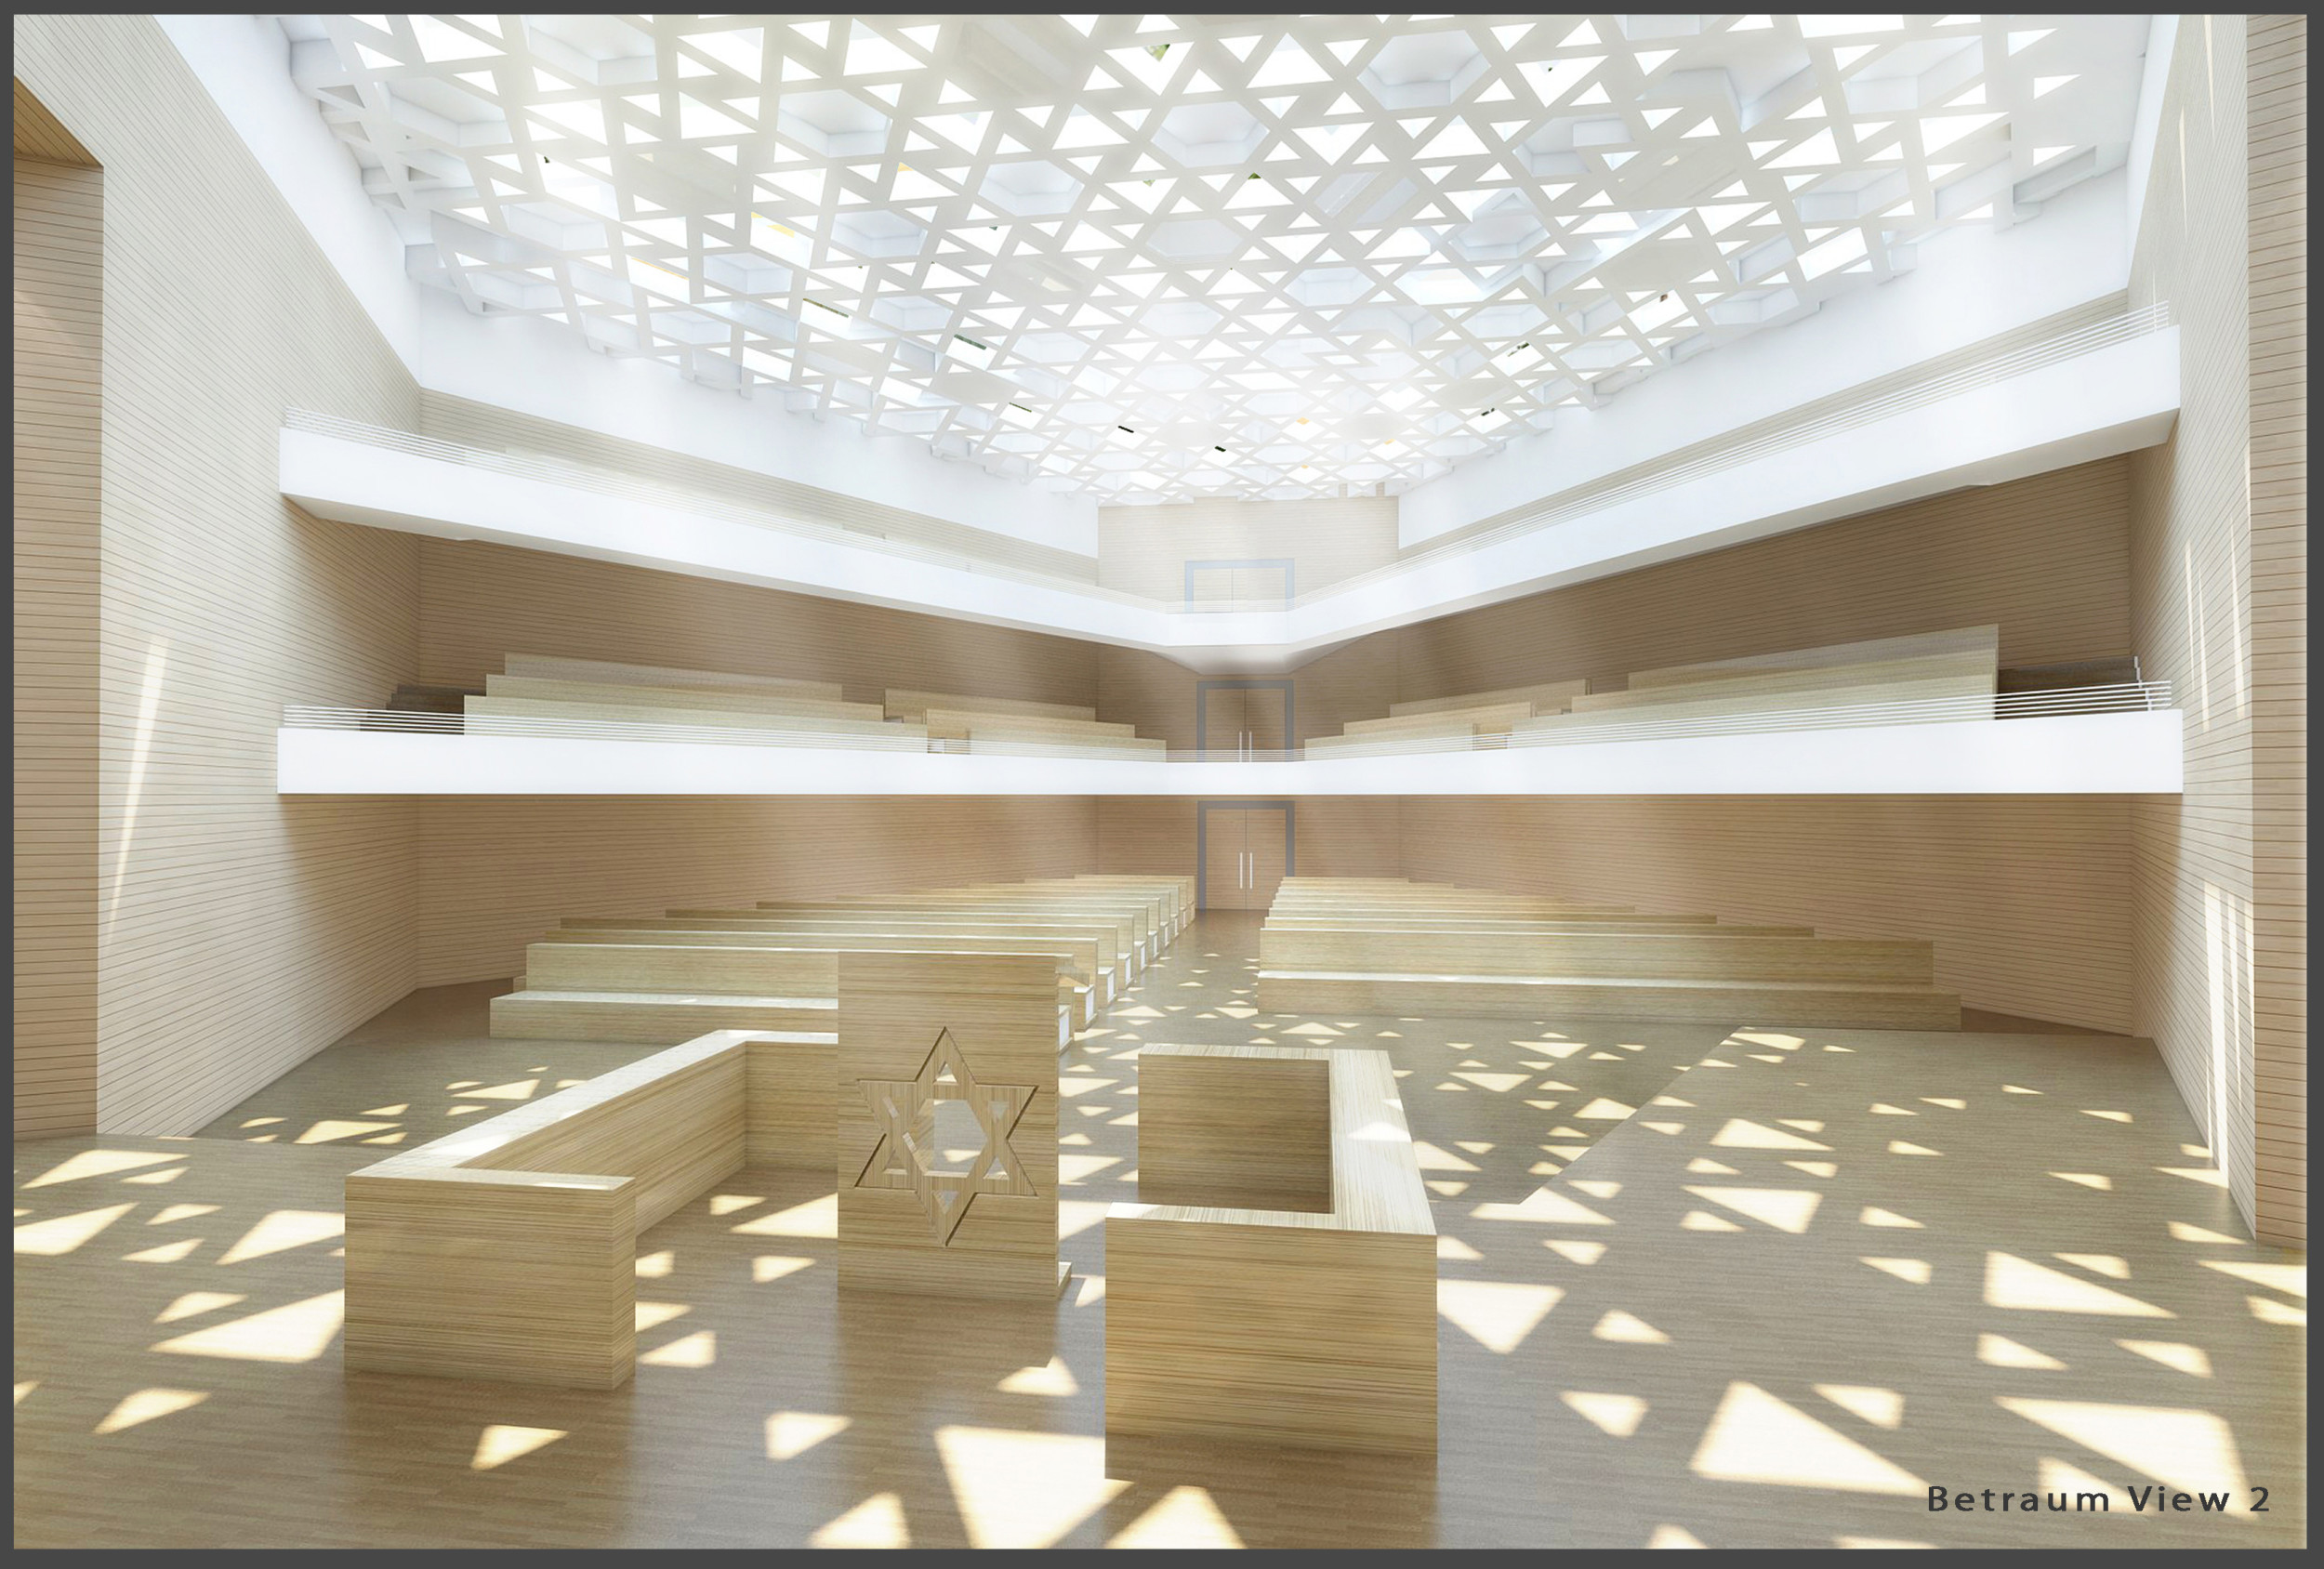 Herrmanns Architekten Presenting the Concept of a New Synagogue in Koblenz in Germany homesthetics (1)